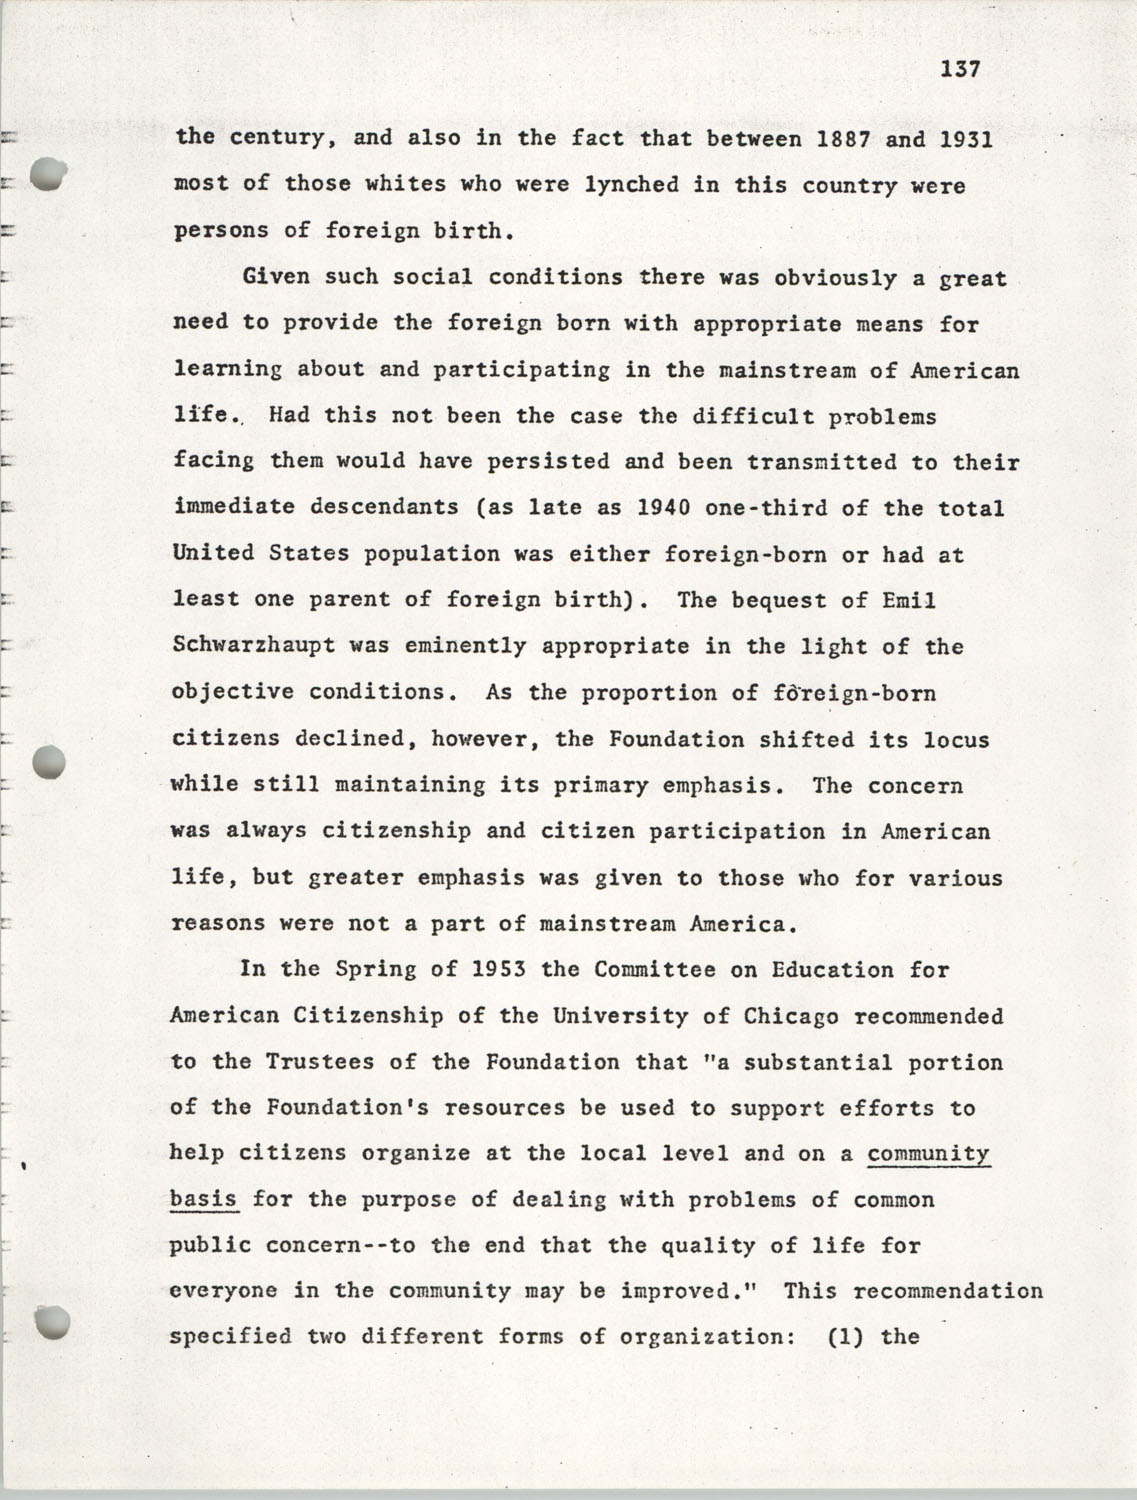 Citizen Participation. Democracy and Social Change, December 1, 1969, Page 137